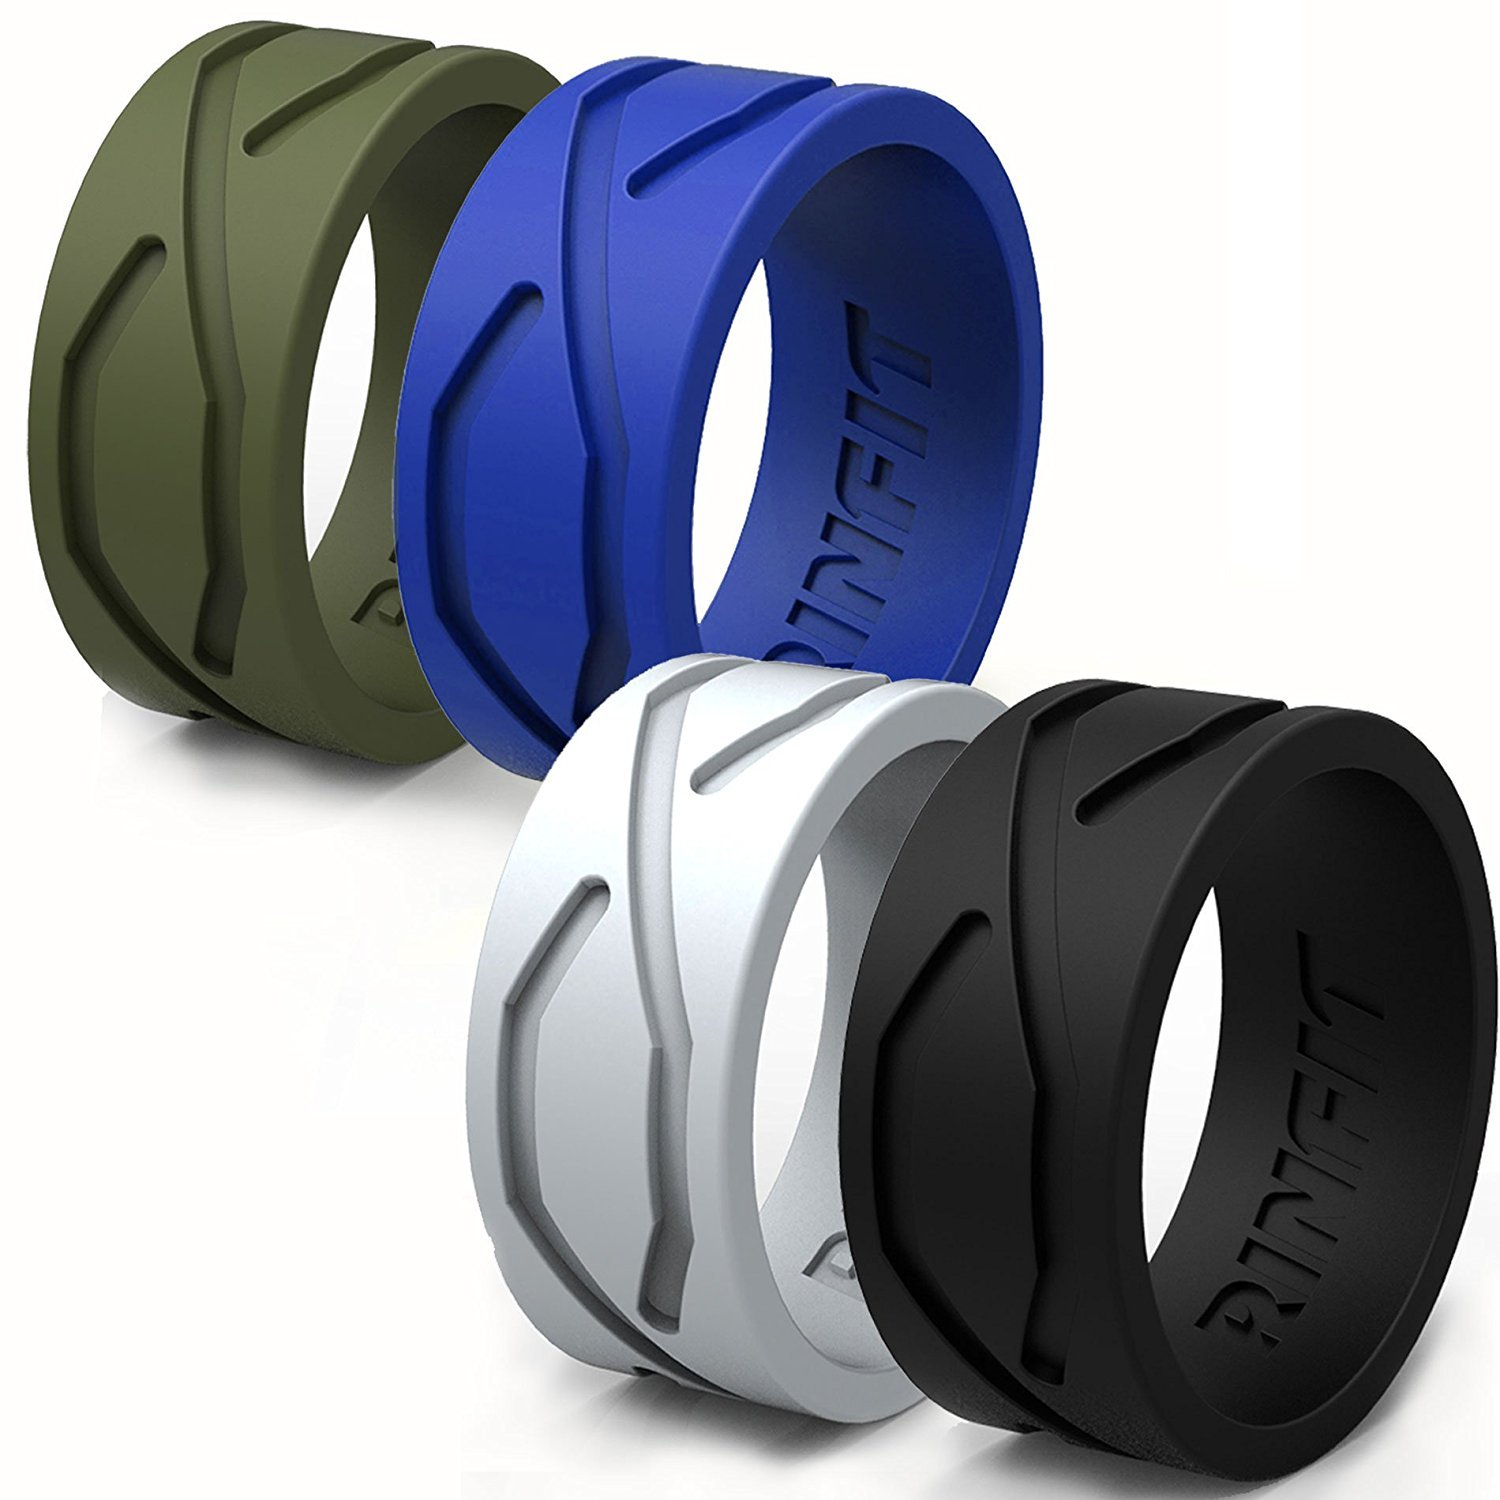 Silicone Wedding Ring/Band for Men - 4 Rings Pack- Designed Medical Grade Silicone Rubber Rings - Black, Green, Blue,Gray - with a Gift Box (9, 4 Pack)